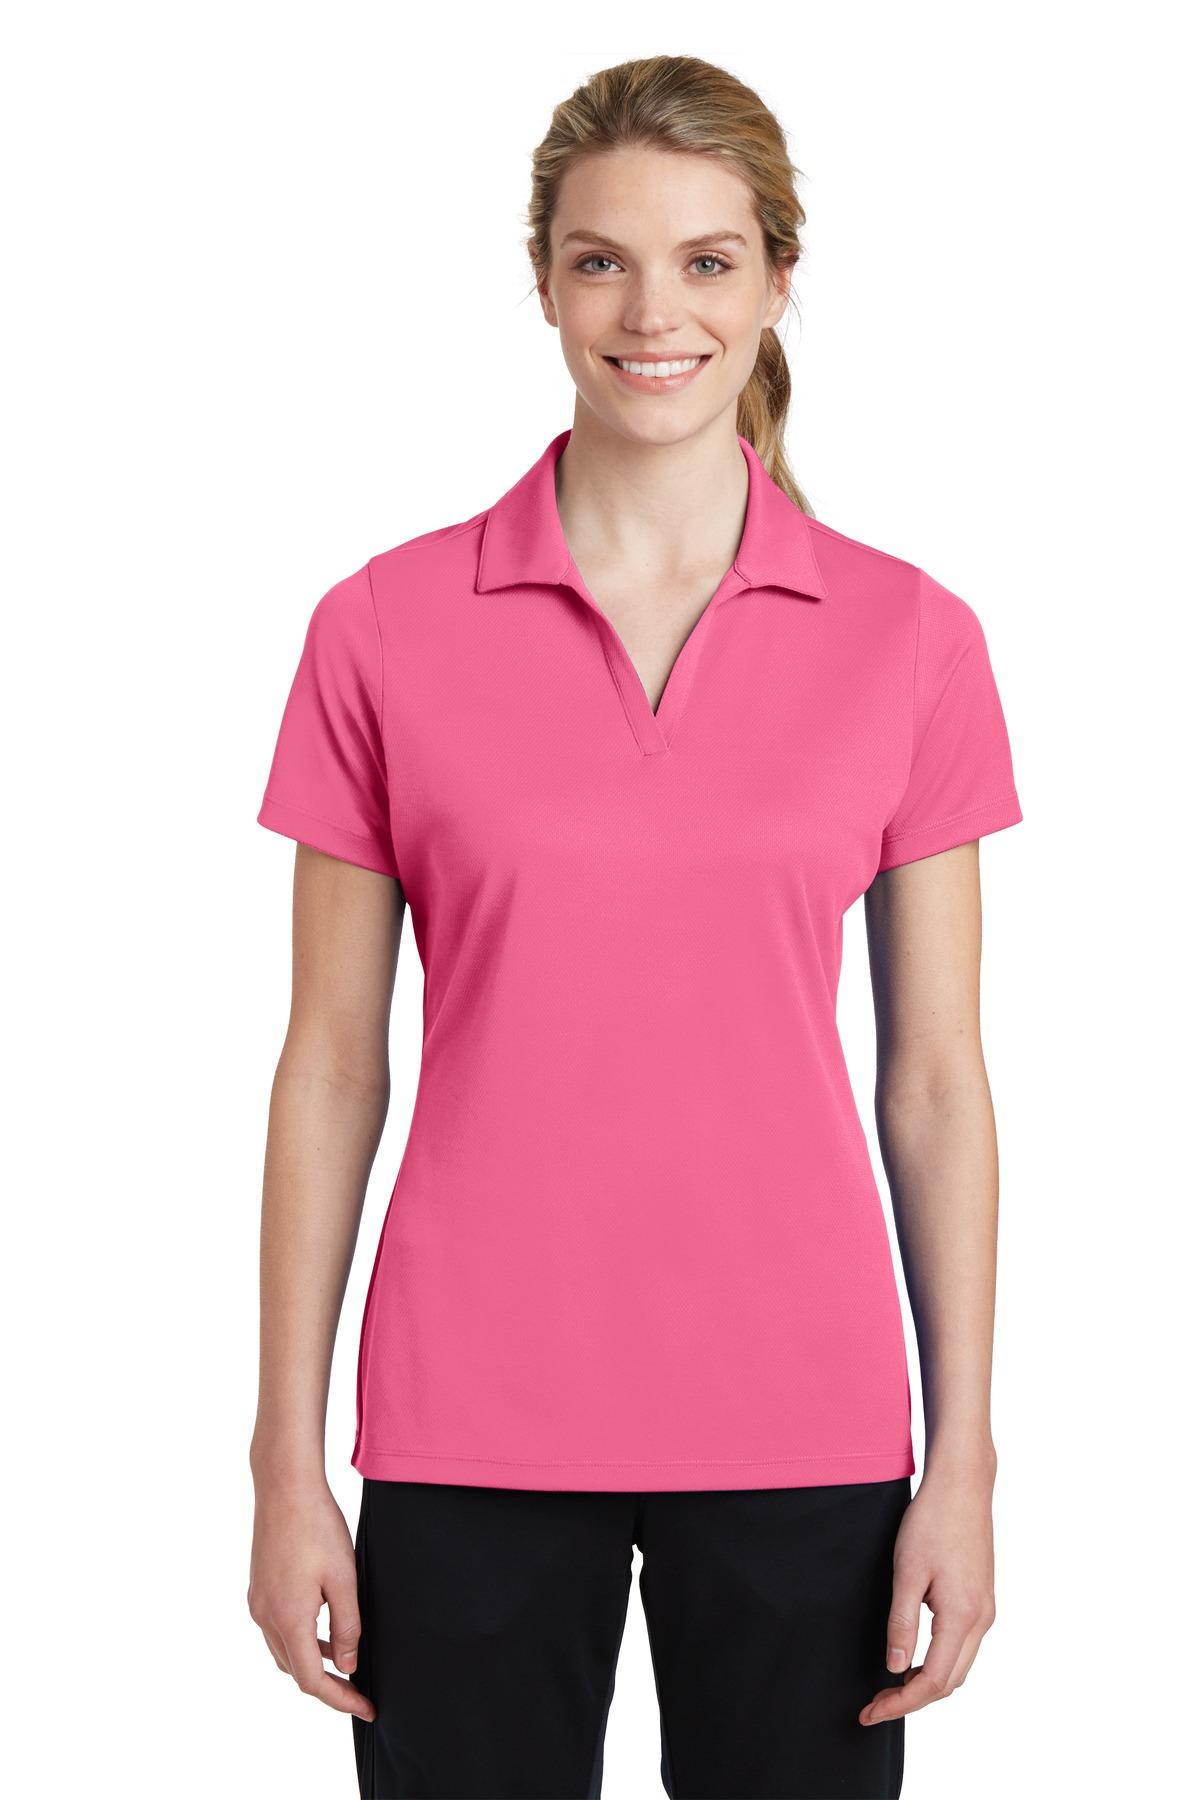 Sport-Tek ®  Ladies PosiCharge ®  RacerMesh ®  Polo. LST640 - Bright Pink